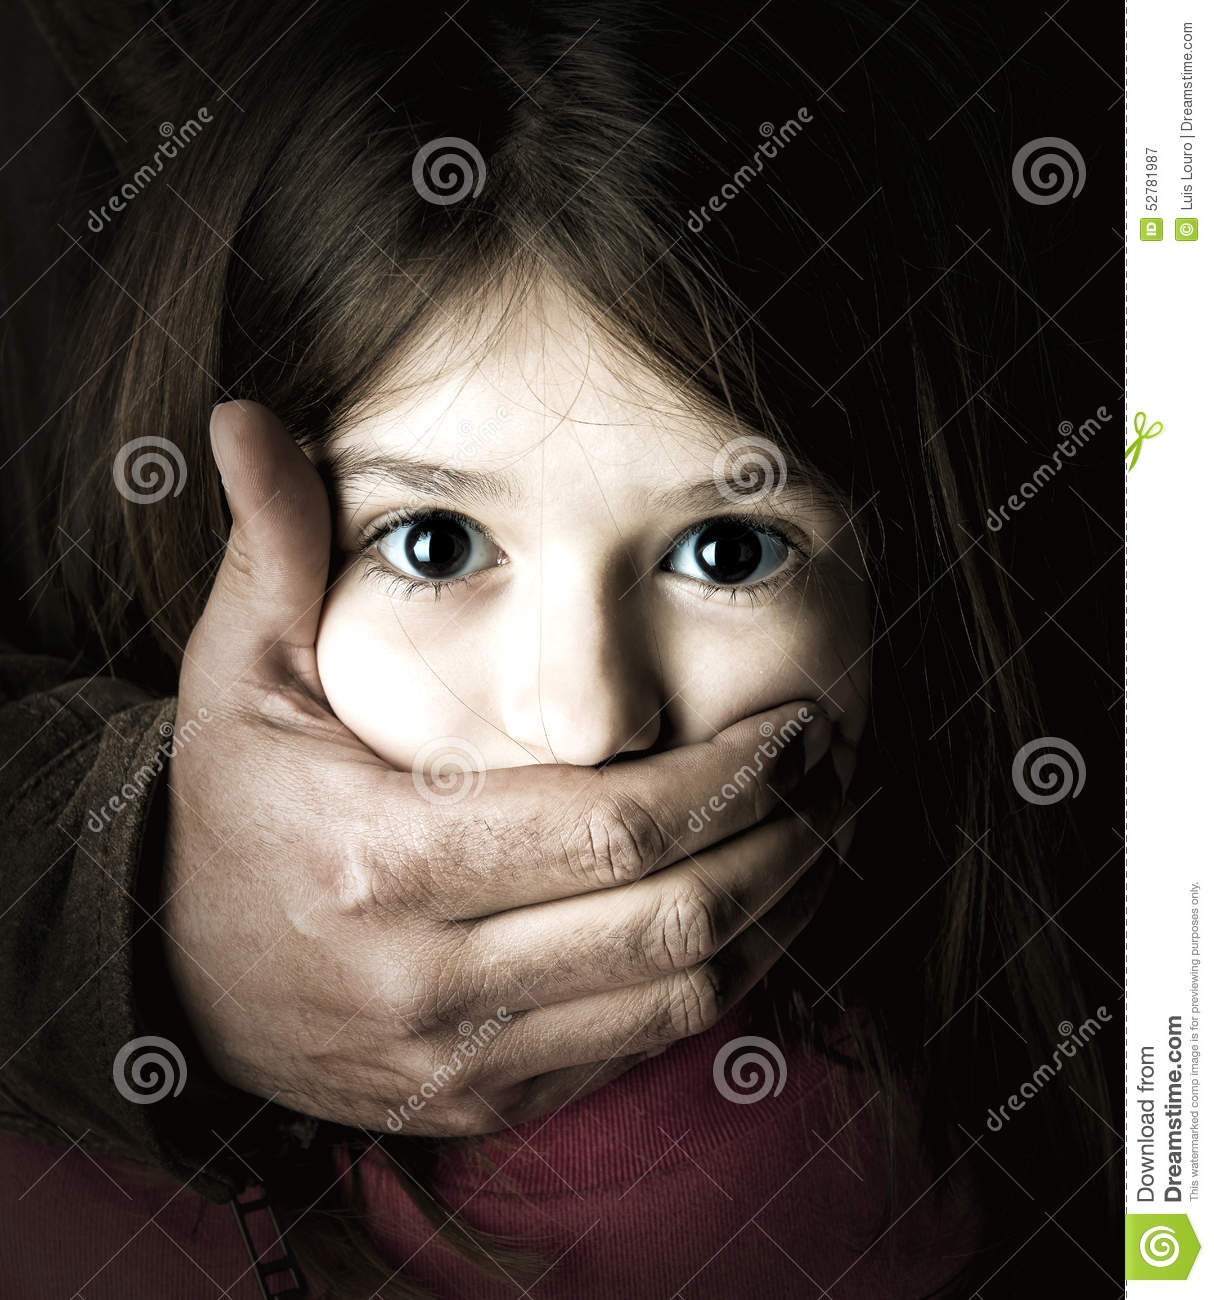 child abduction stock photo